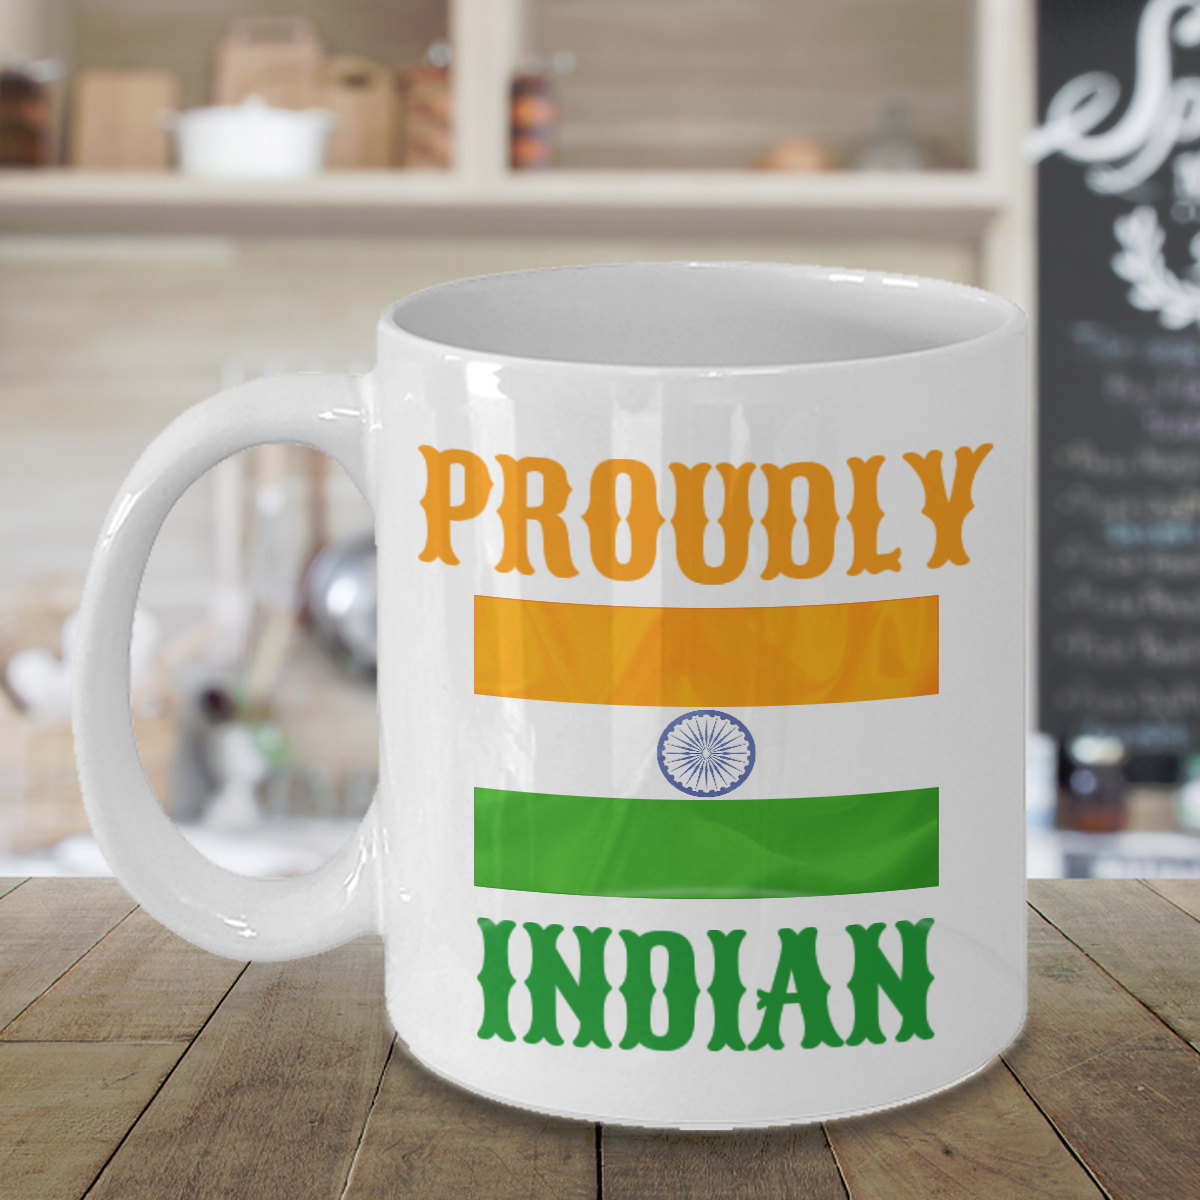 Proudly Indian Personalized Mug Birthday Gift For Coffee Lover Him Her Men Women